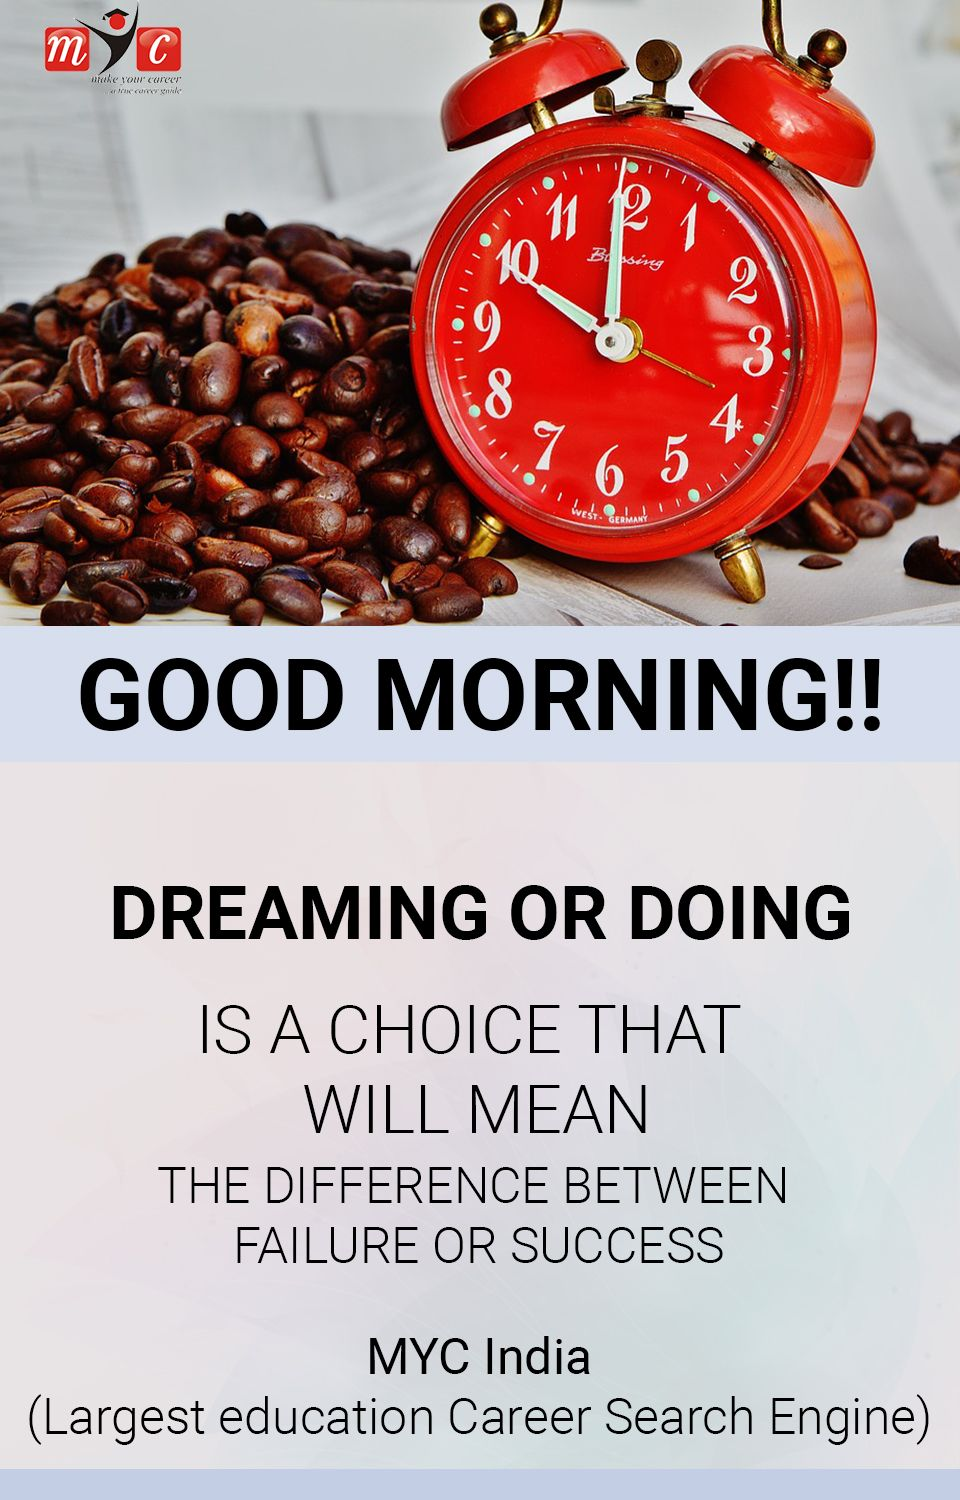 #DREAMING or DOING Is a choice that Will mean The difference between #FAILURE or #SUCCESS #GOODMORNING!! @Mycindia.com